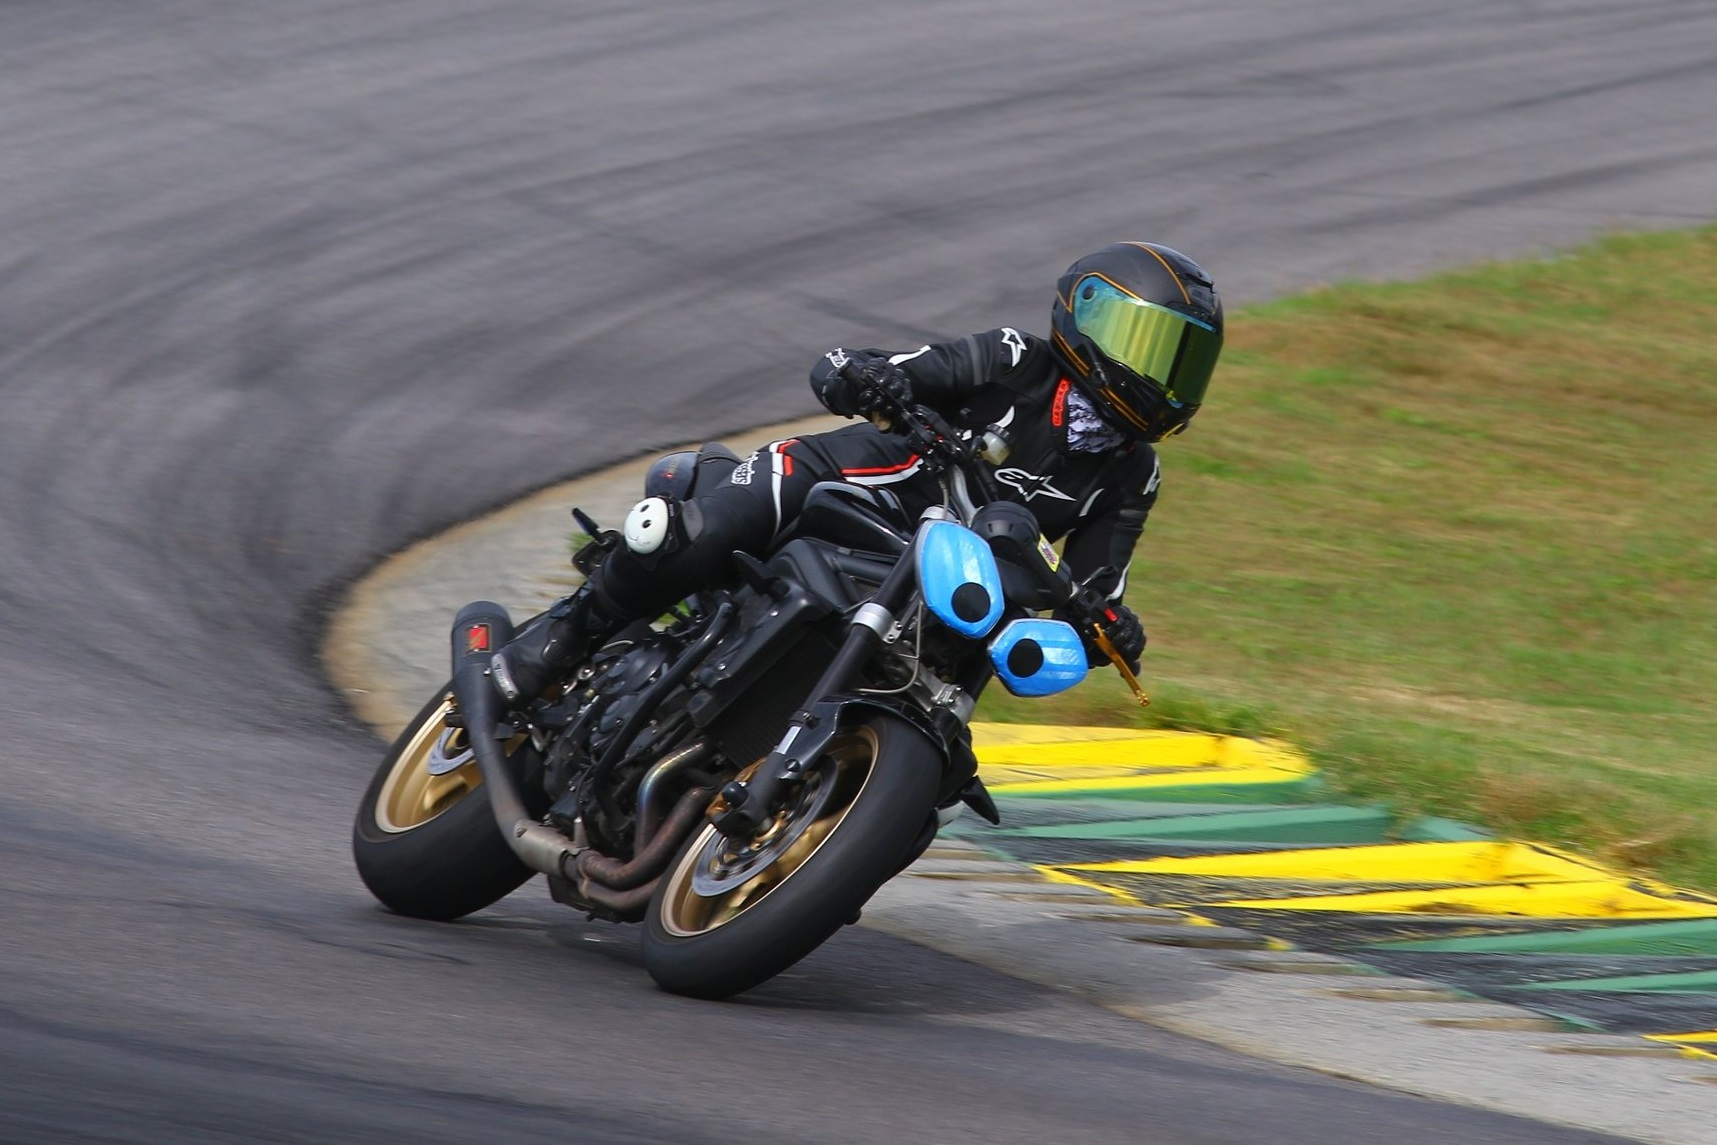 If I want to lean over on my motorcycle, how could it be any lower? I'm already so close to the ground. This is why you must be    so    careful about lowering a sportbike, doing it improperly will result in damage, or worse, injury because you're bottoming  out.